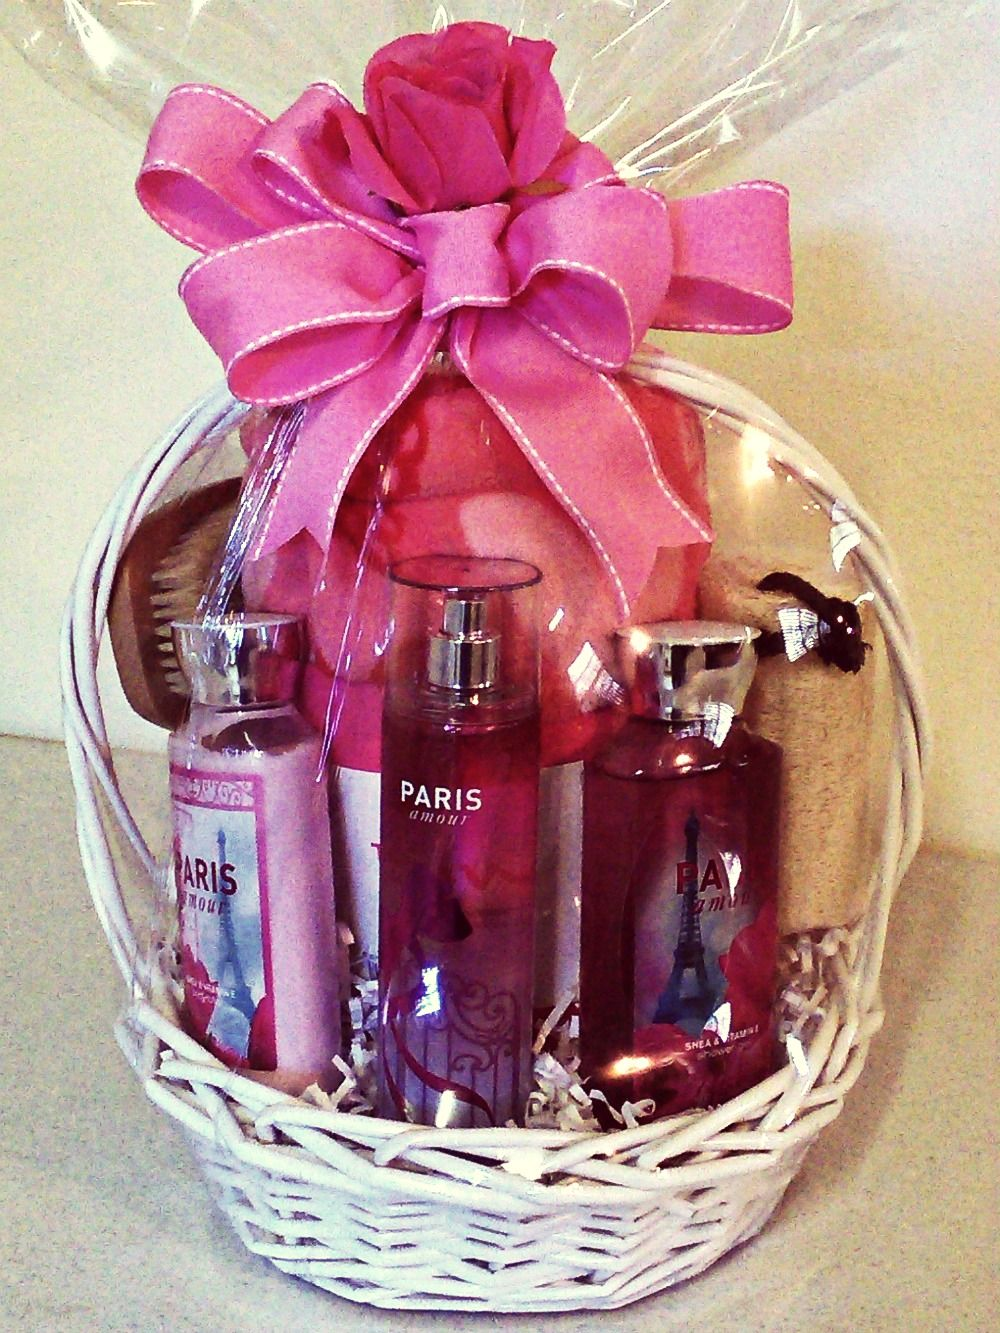 Scentsational Paris Bath Body Works Spa Themed Gift